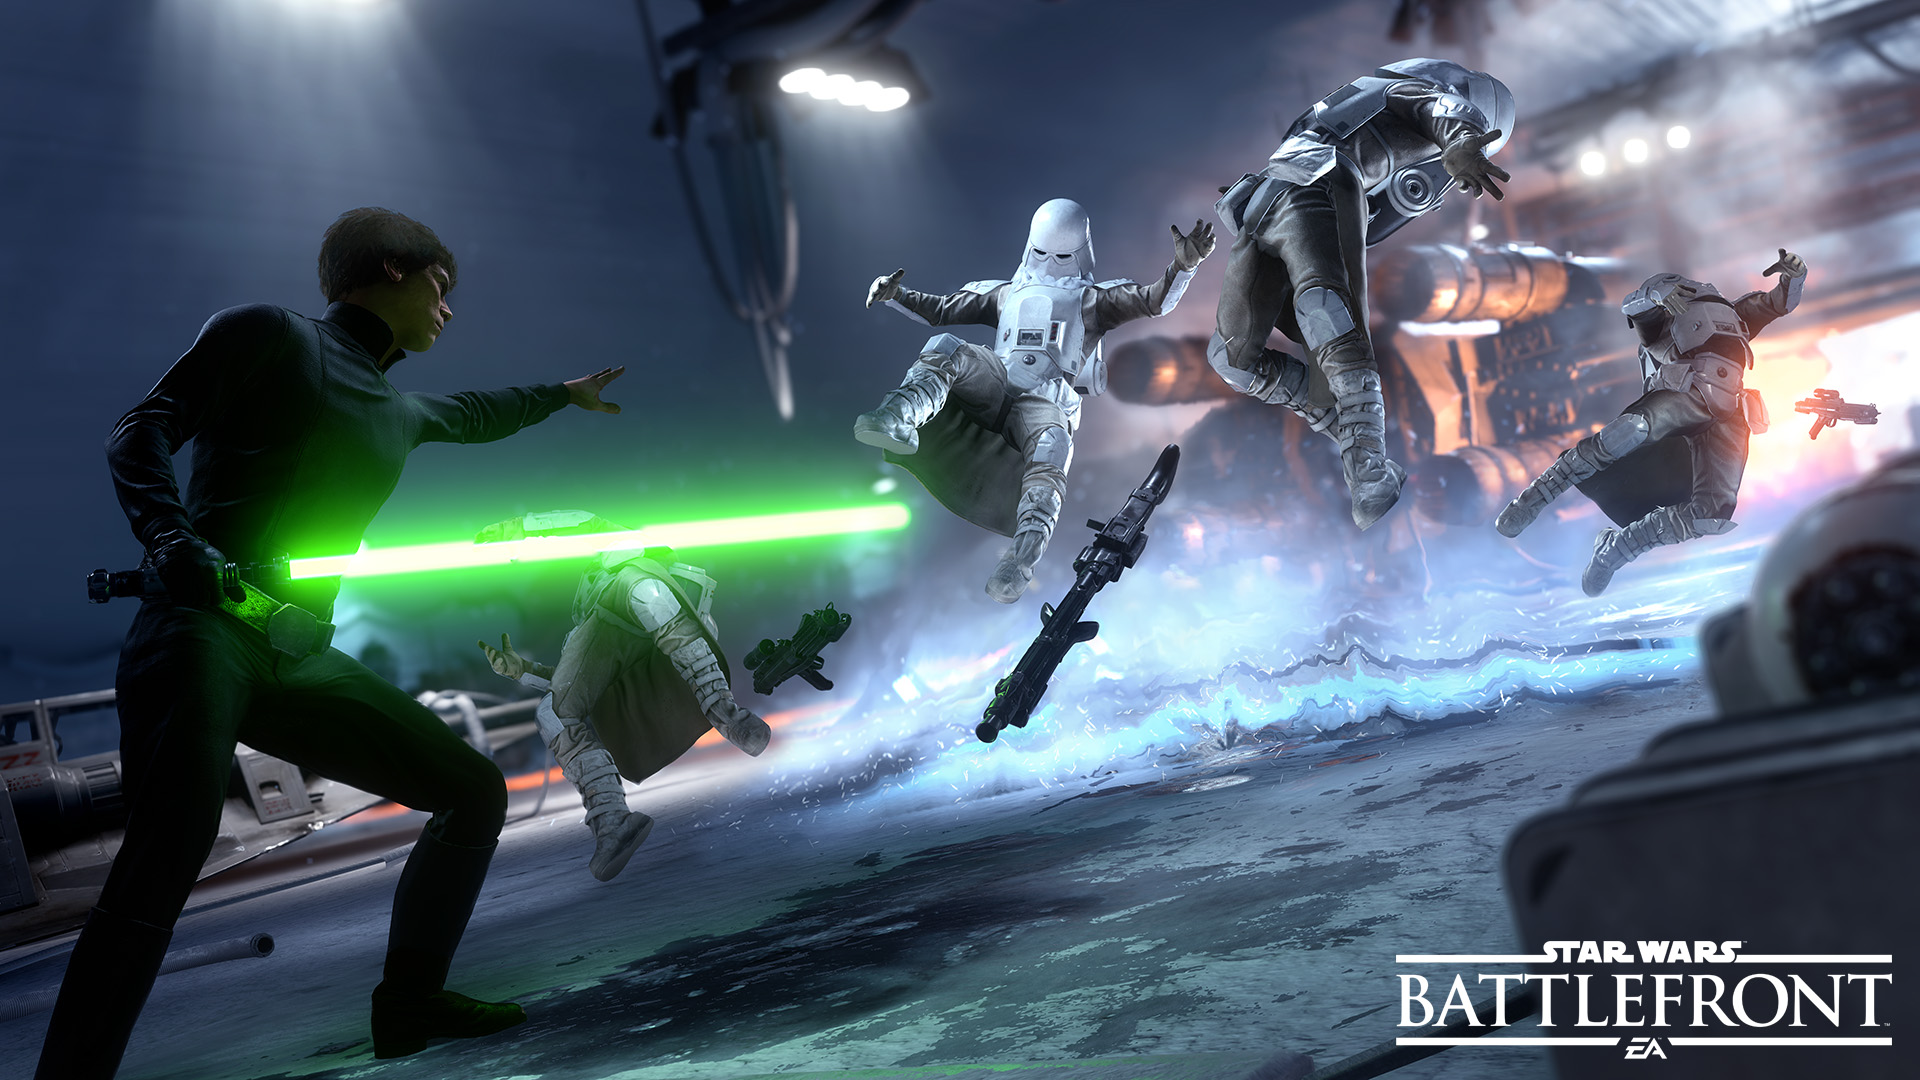 48 Star Wars Battlefront Iphone Wallpaper On Wallpapersafari